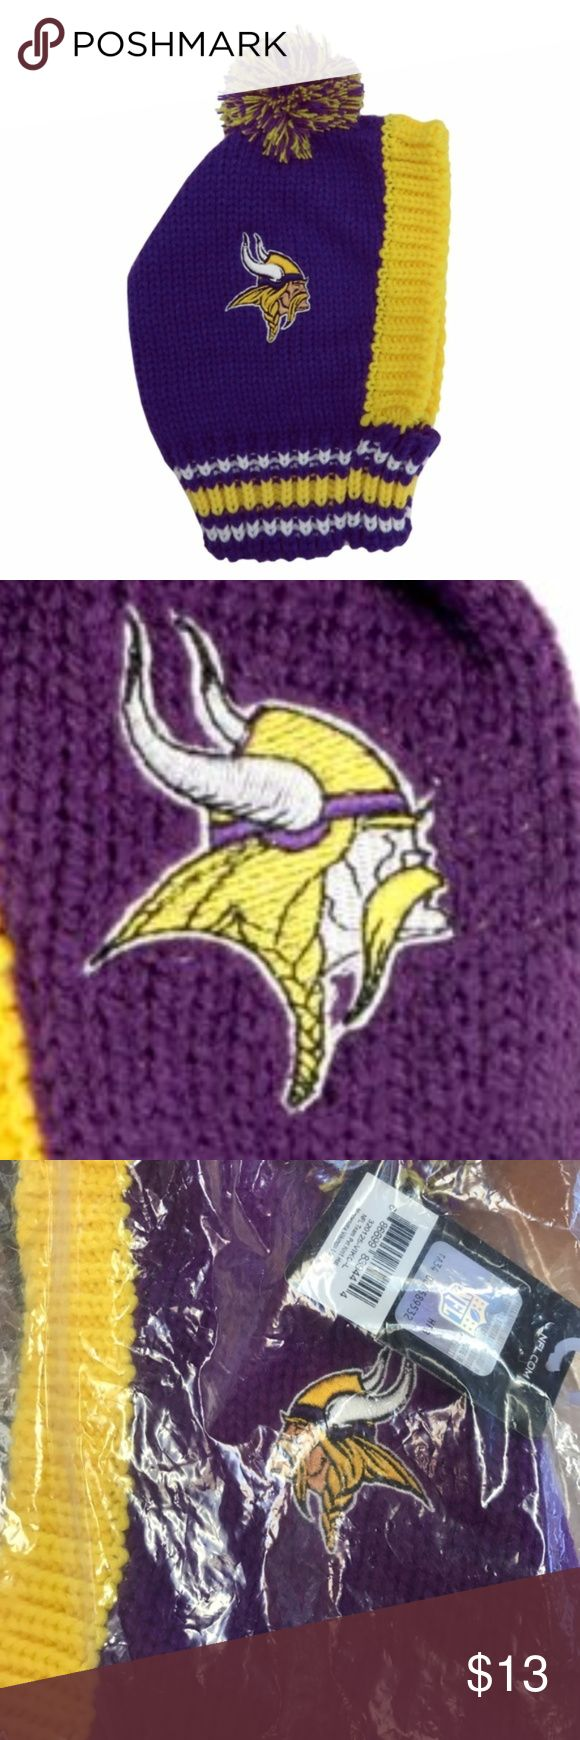 """Minnesota Vikings Pet Knit Hat Brand New Officially Licensed with tags. Transfer your Vikings passion to your pet with this official NFL Knit Hat for Pets. The logo and colors of one of the league's oldest and proudest franchises are on display on this adorable hat. Stretch scarf to hold in place, NFL embroidered logo, Pom pom on top. (LG 11"""" x 7"""") 686699839444 TX NFL Accessories Hats"""